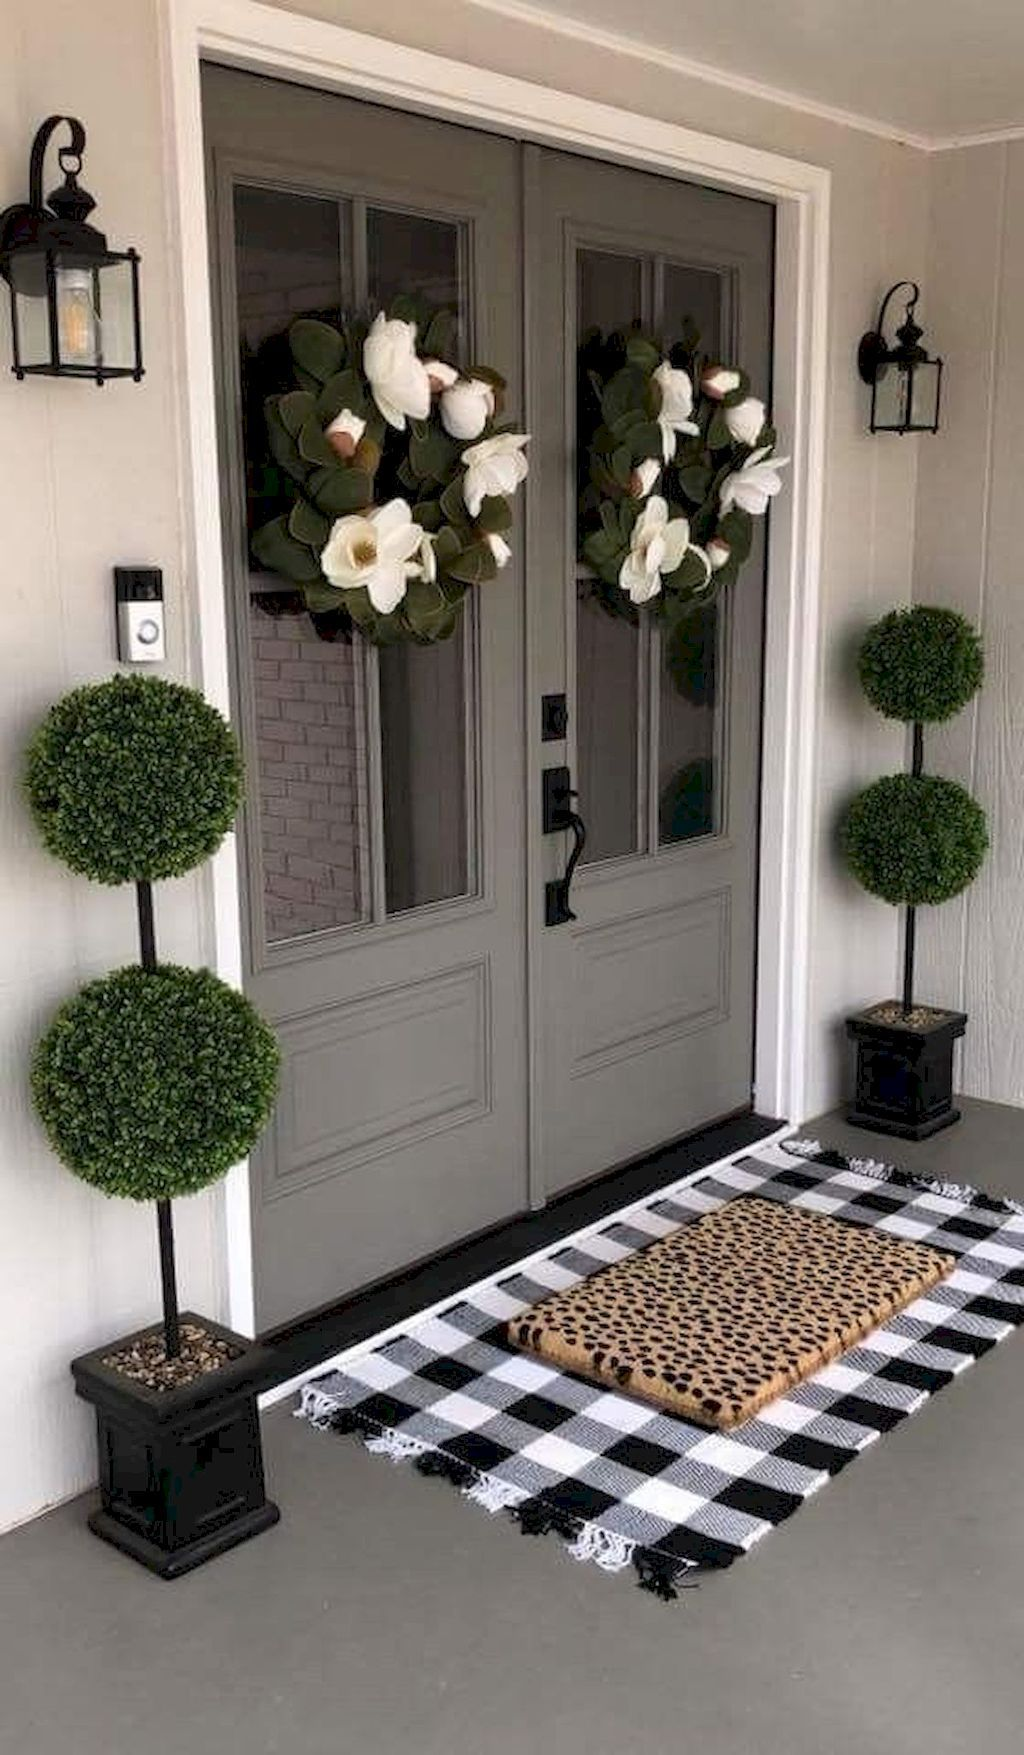 Nice 85 Attractive Spring Farmhouse Decor Ideas For Your Home Inspiration Source Link Htt Front Porch Decorating Porch Decorating Spring Farmhouse Decorating